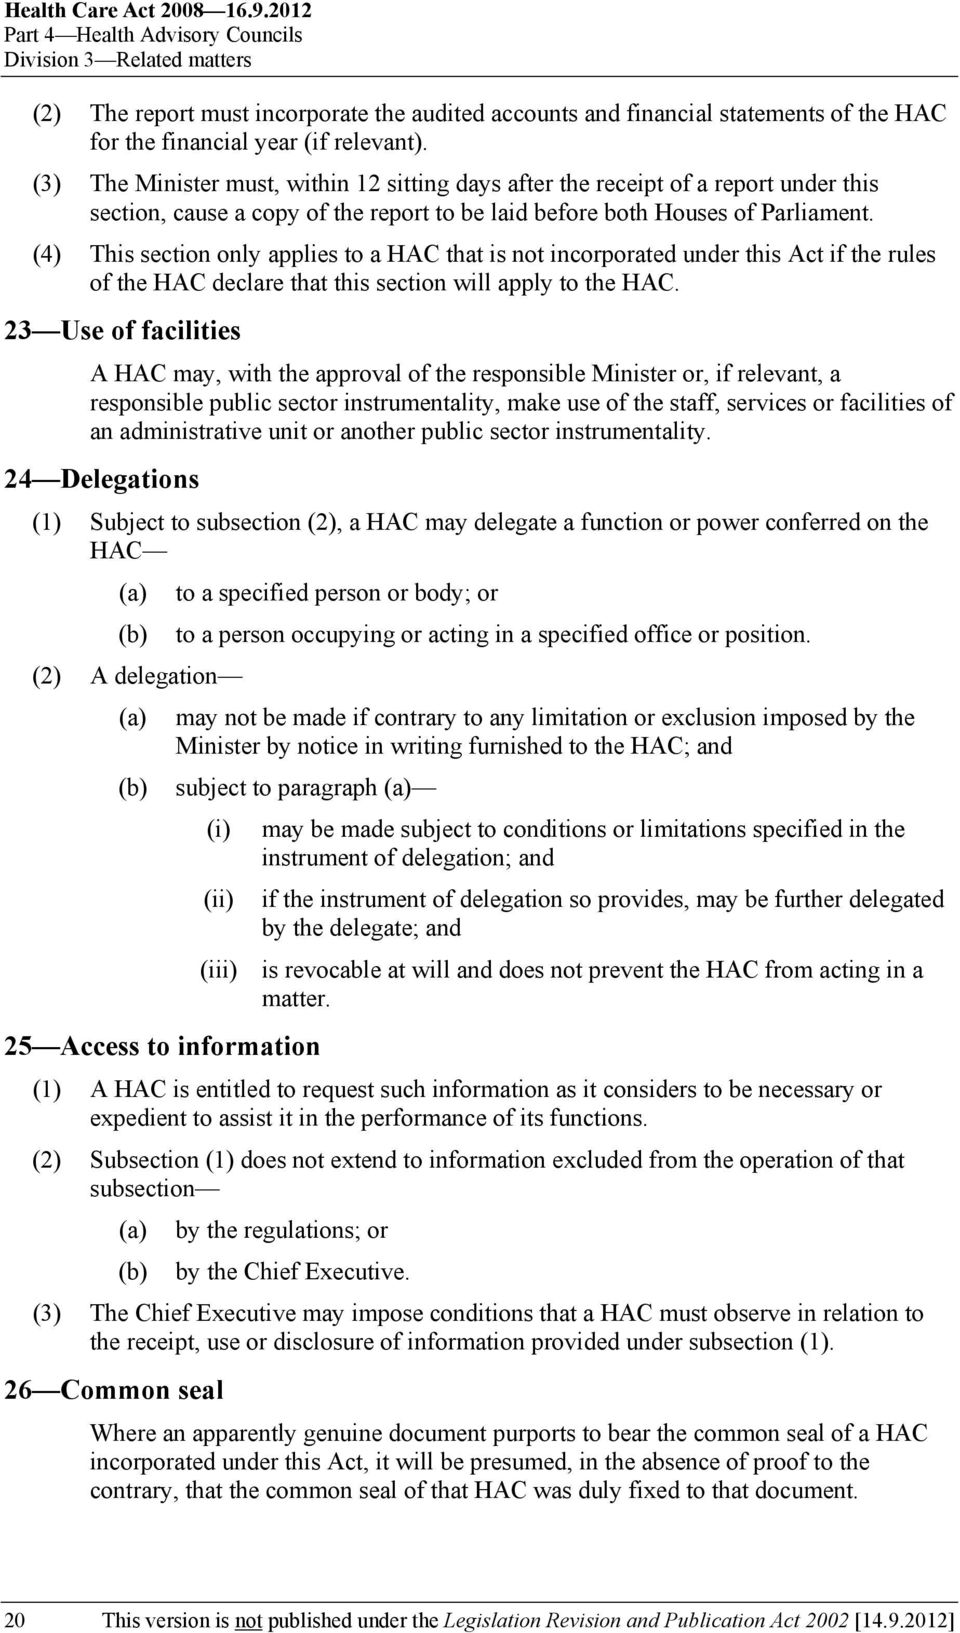 (3) The Minister must, within 12 sitting days after the receipt of a report under this section, cause a copy of the report to be laid before both Houses of Parliament.